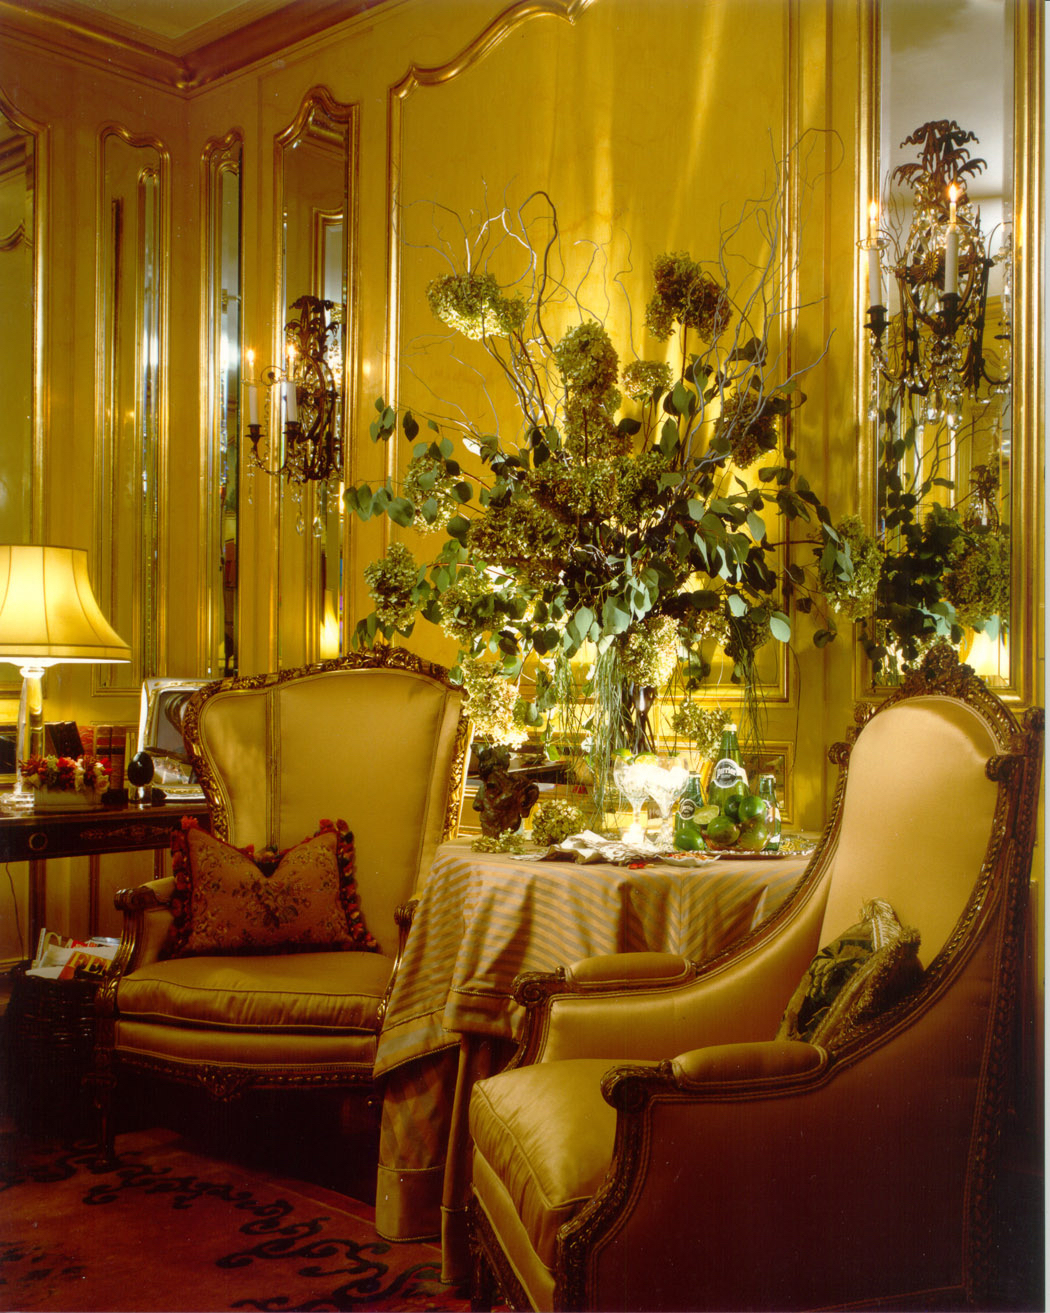 Jewel Box Room